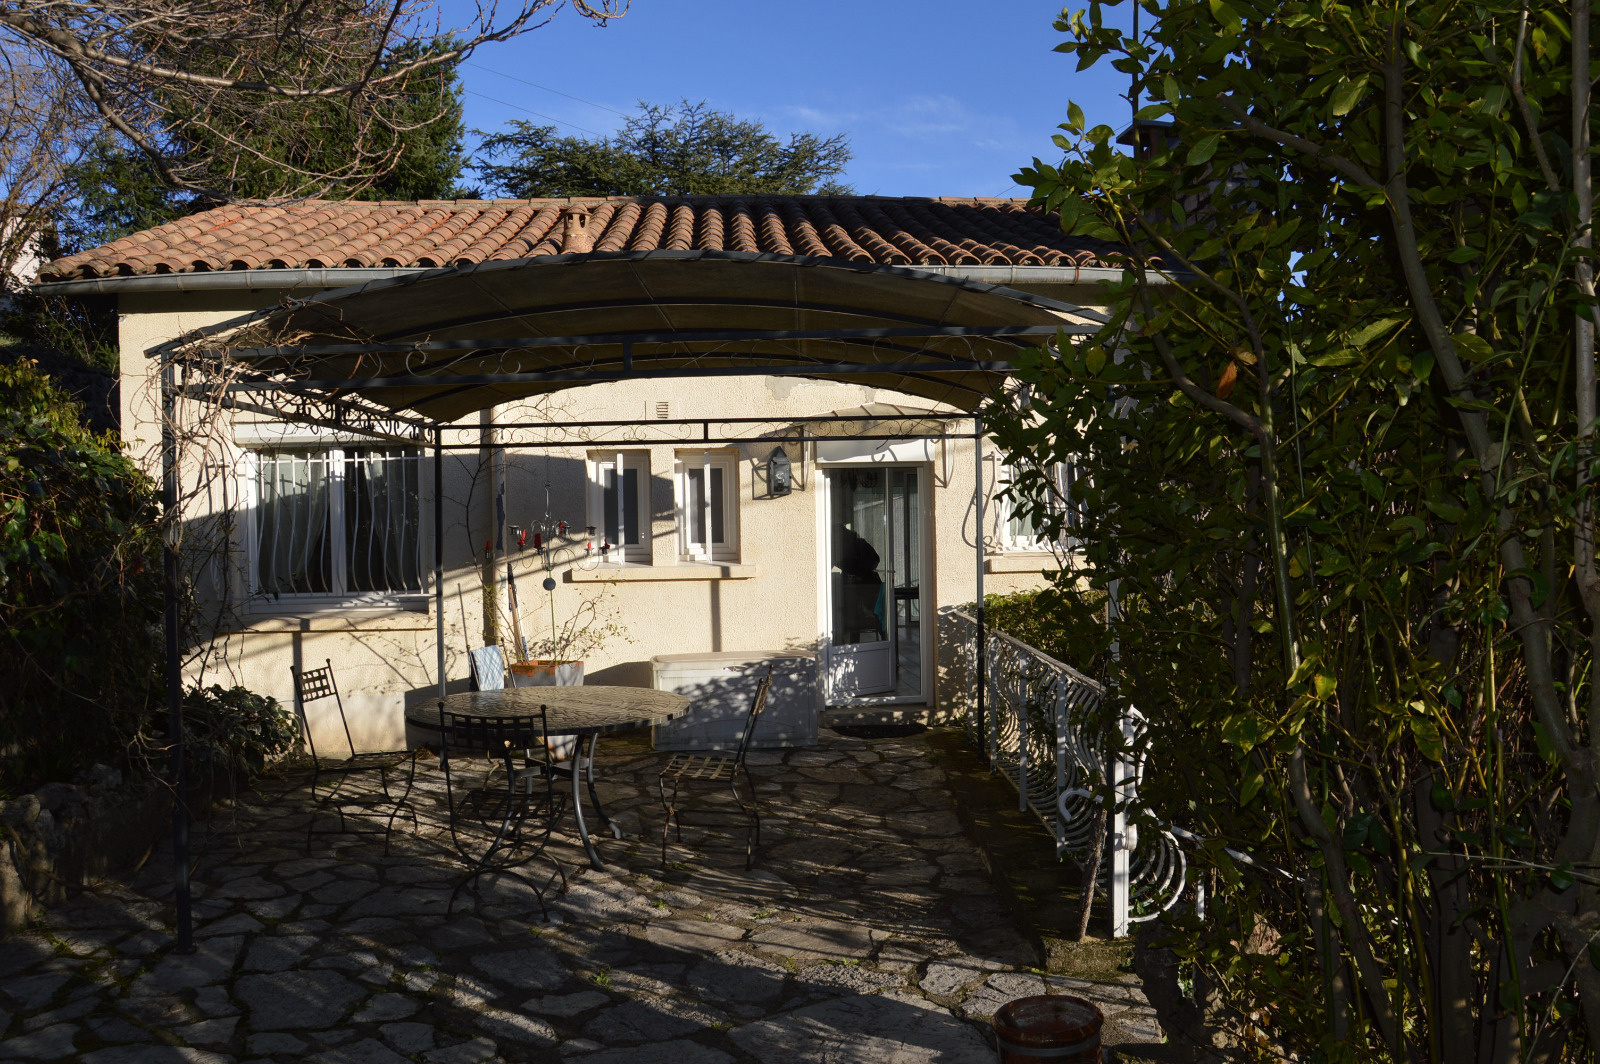 Agence immobiliere cevenole lieure for Agence immobiliere 85